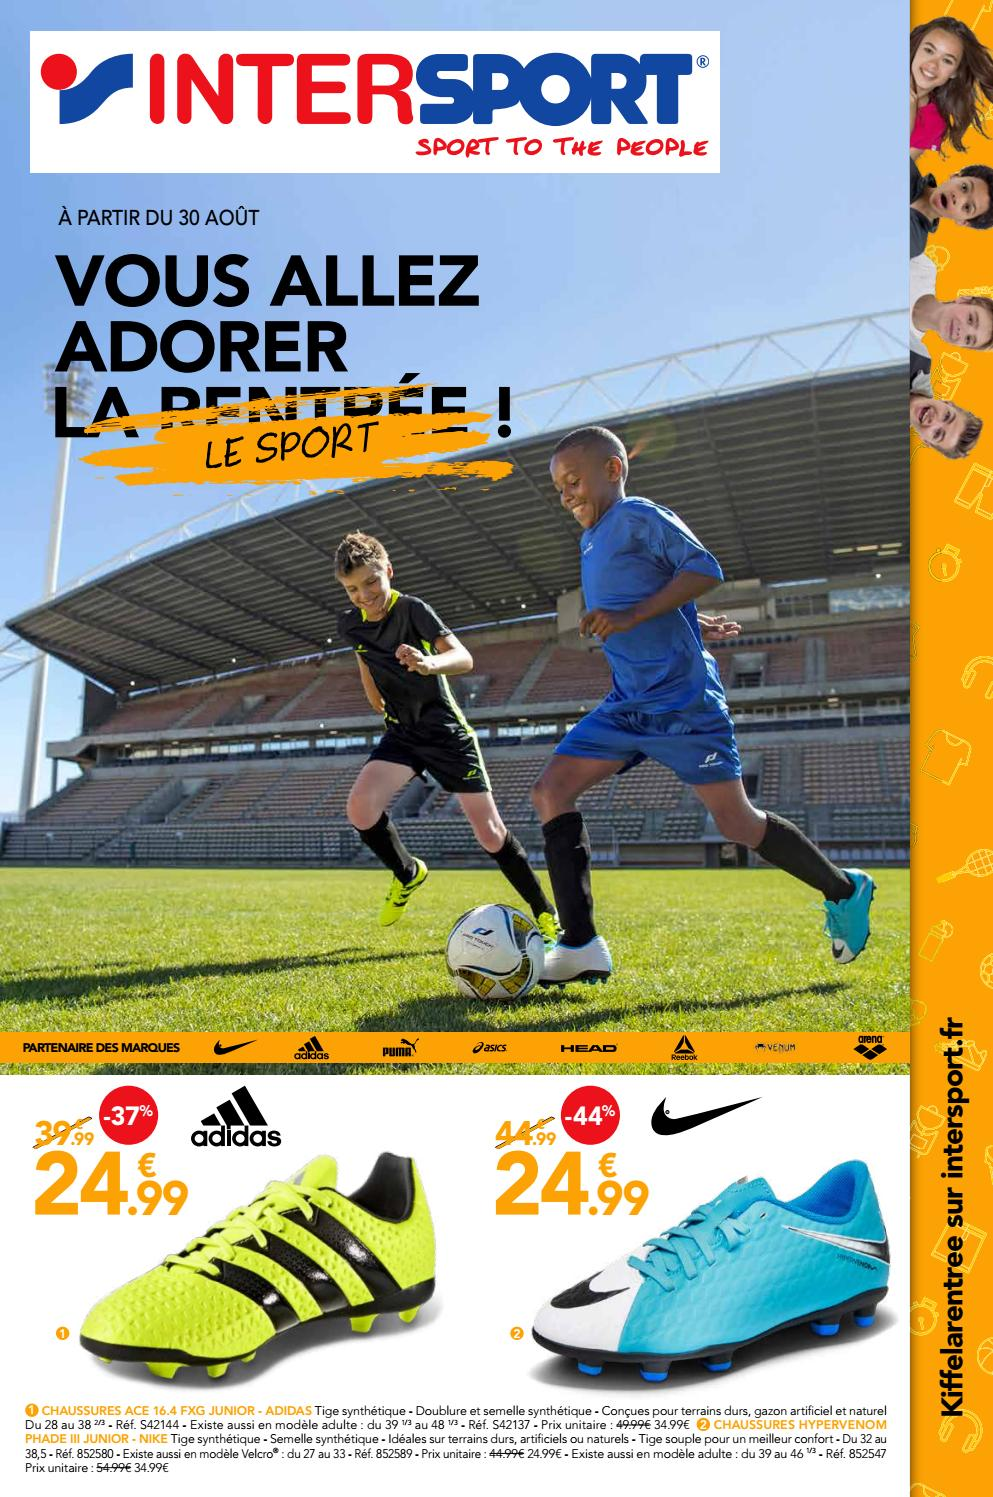 Rentree PagesBy Mons Des – Classes24 Intersport srtdhQ